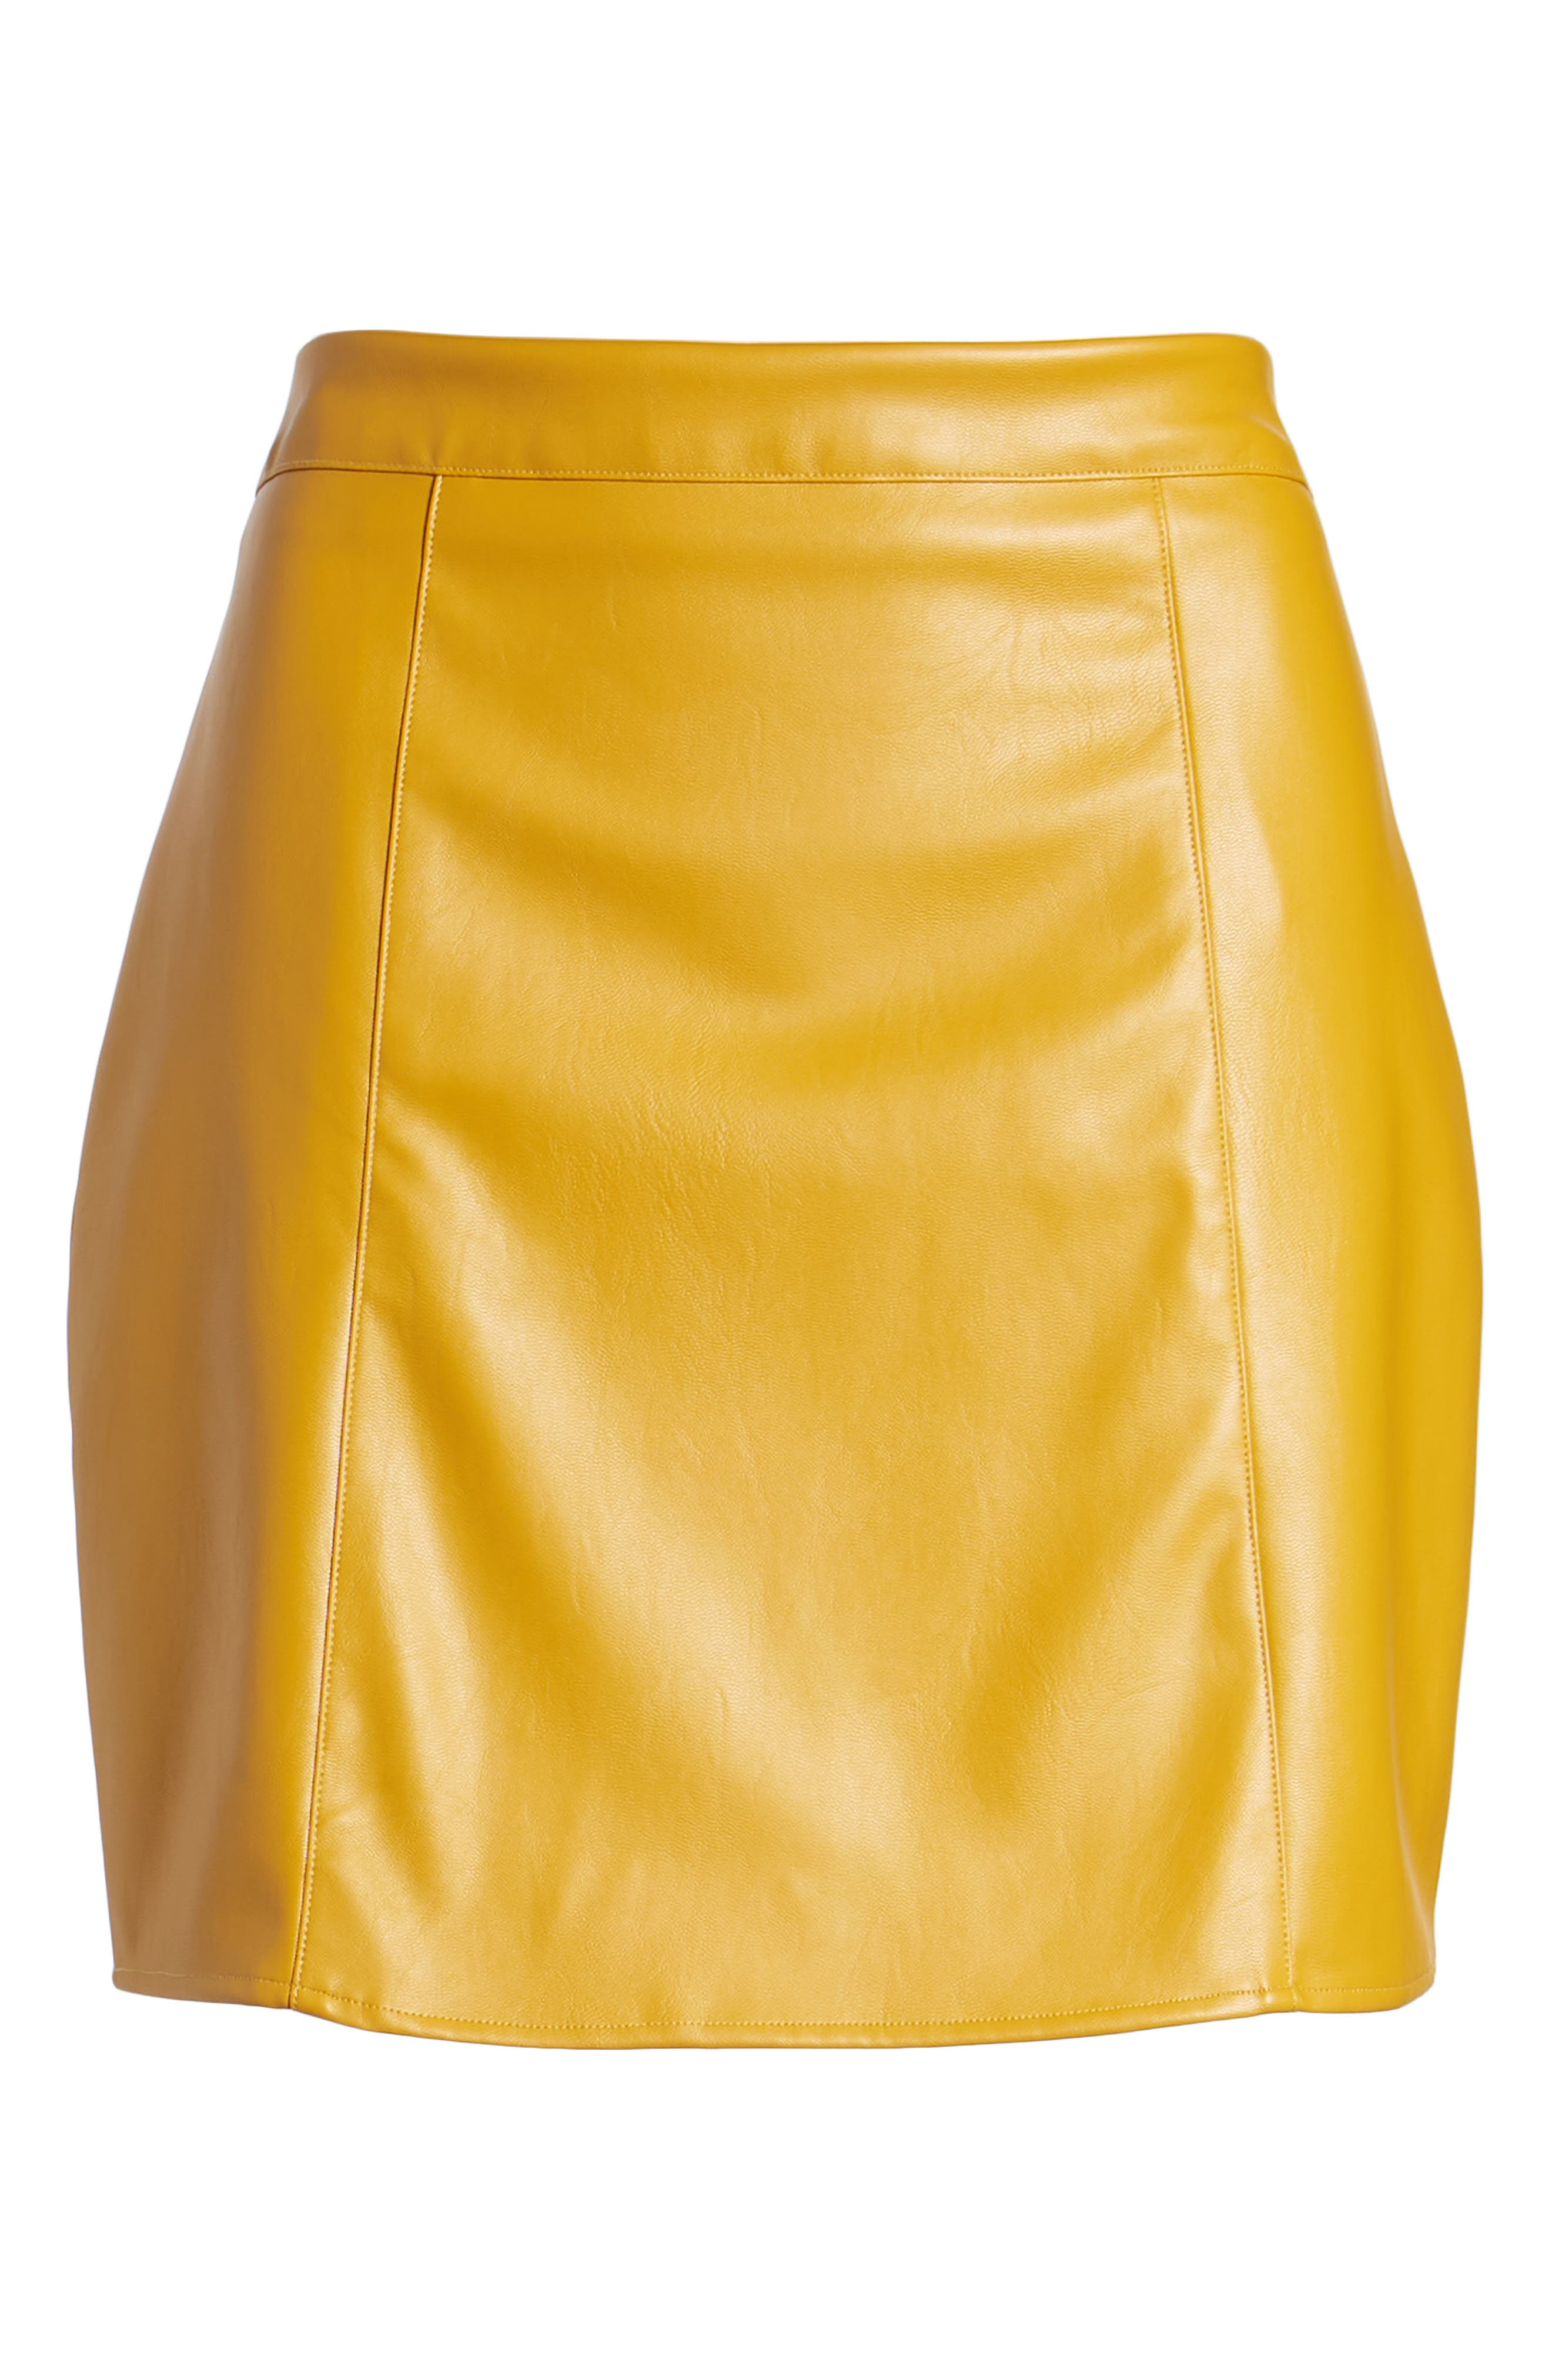 Bishop + Young Faux Leather Miniskirt,                             Alternate thumbnail 6, color,                             Mustard